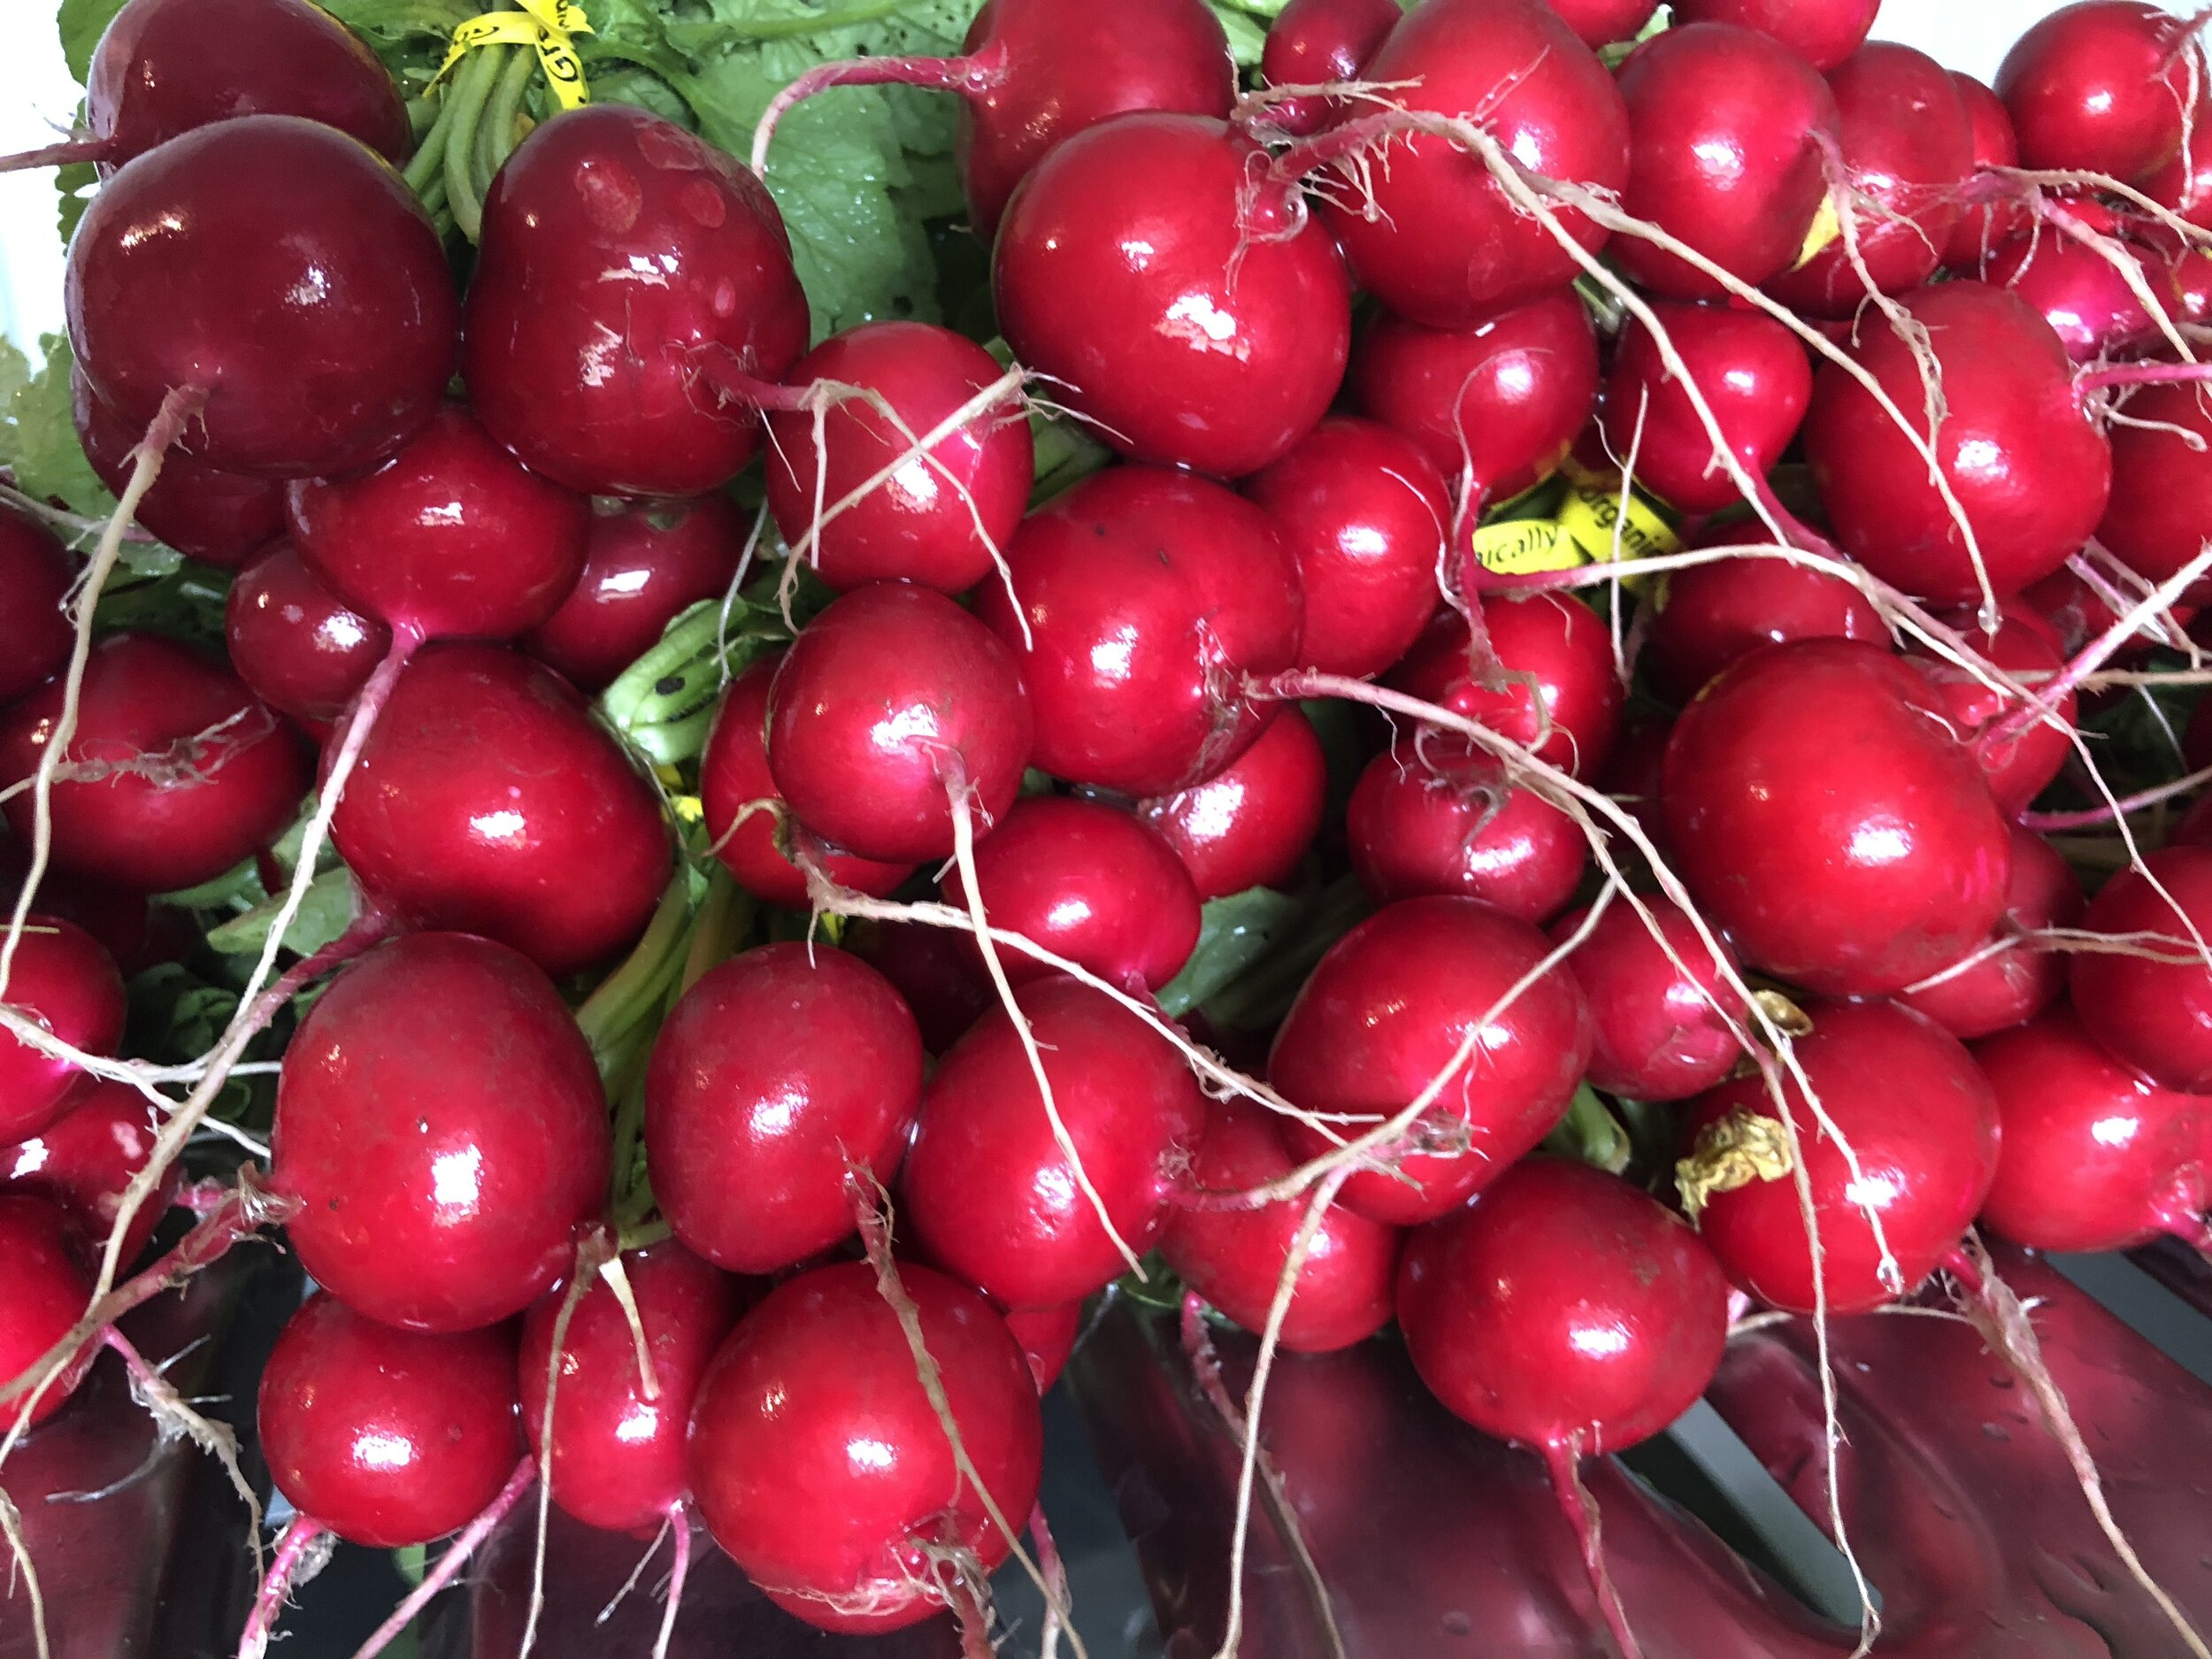 can't get over how pretty the radishes are